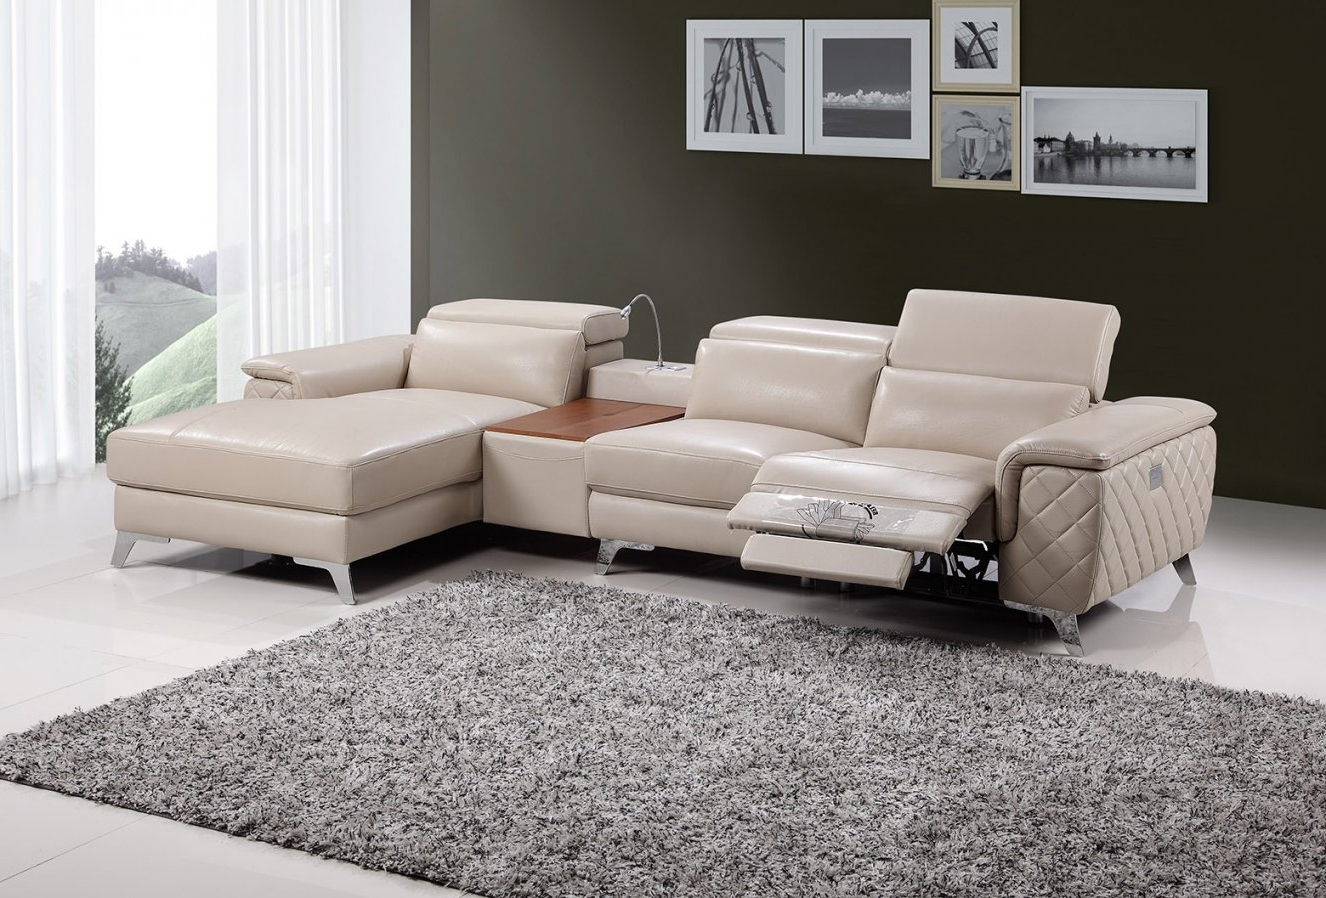 Well Liked Chaise Lounge Sofa With Recliner Intended For Chaise Lounge Recliners (View 15 of 15)